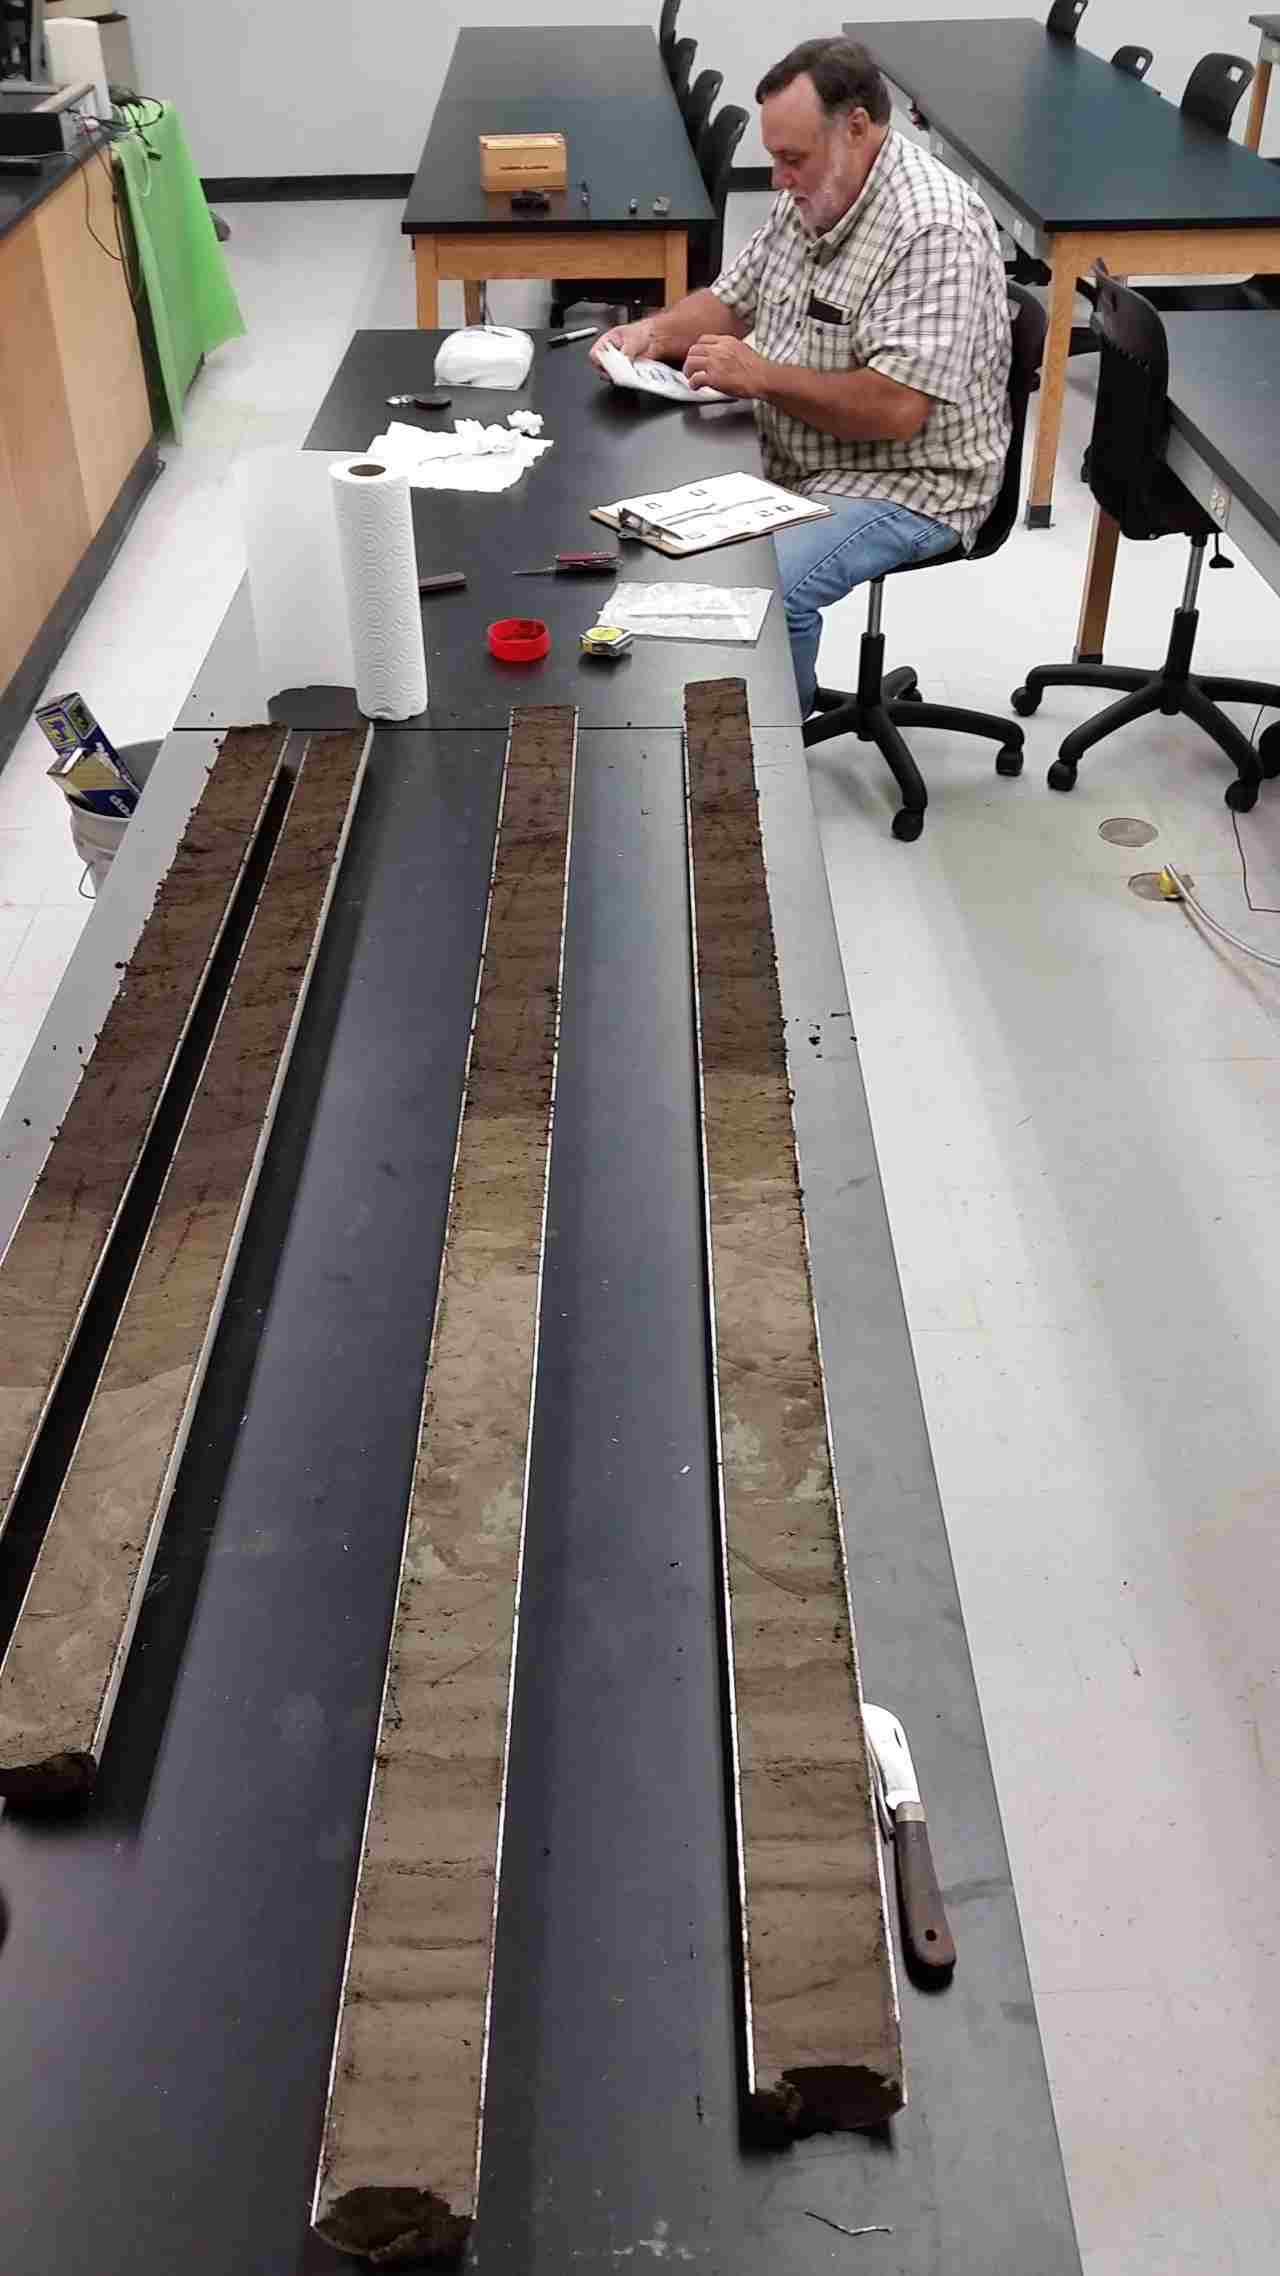 The long sediment cores are cut in half in order to extract samples for analysis. Image credit: Christopher R Moore